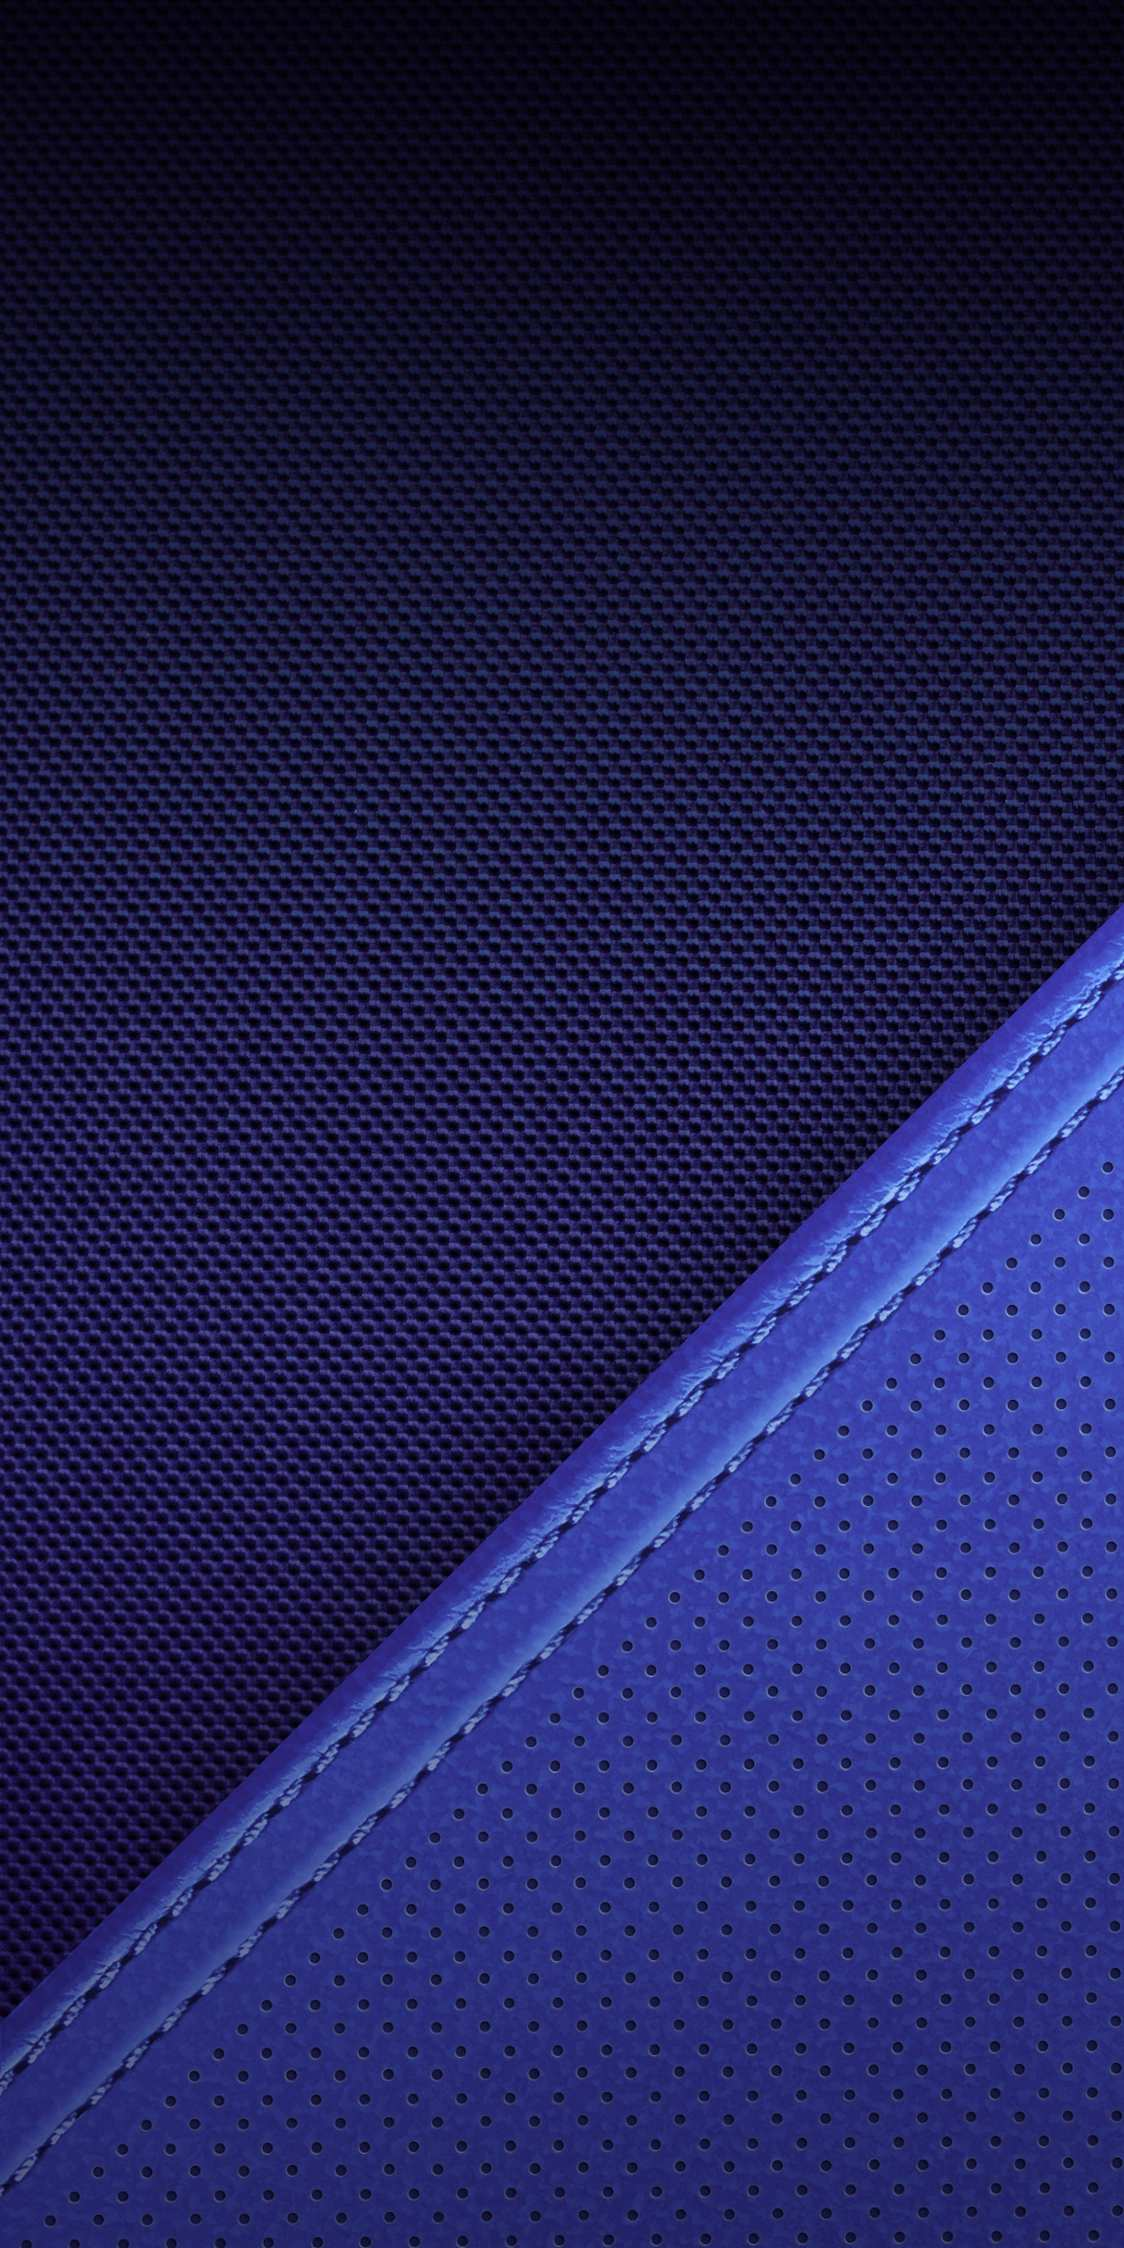 Blue Meterial iPhone Wallpaper